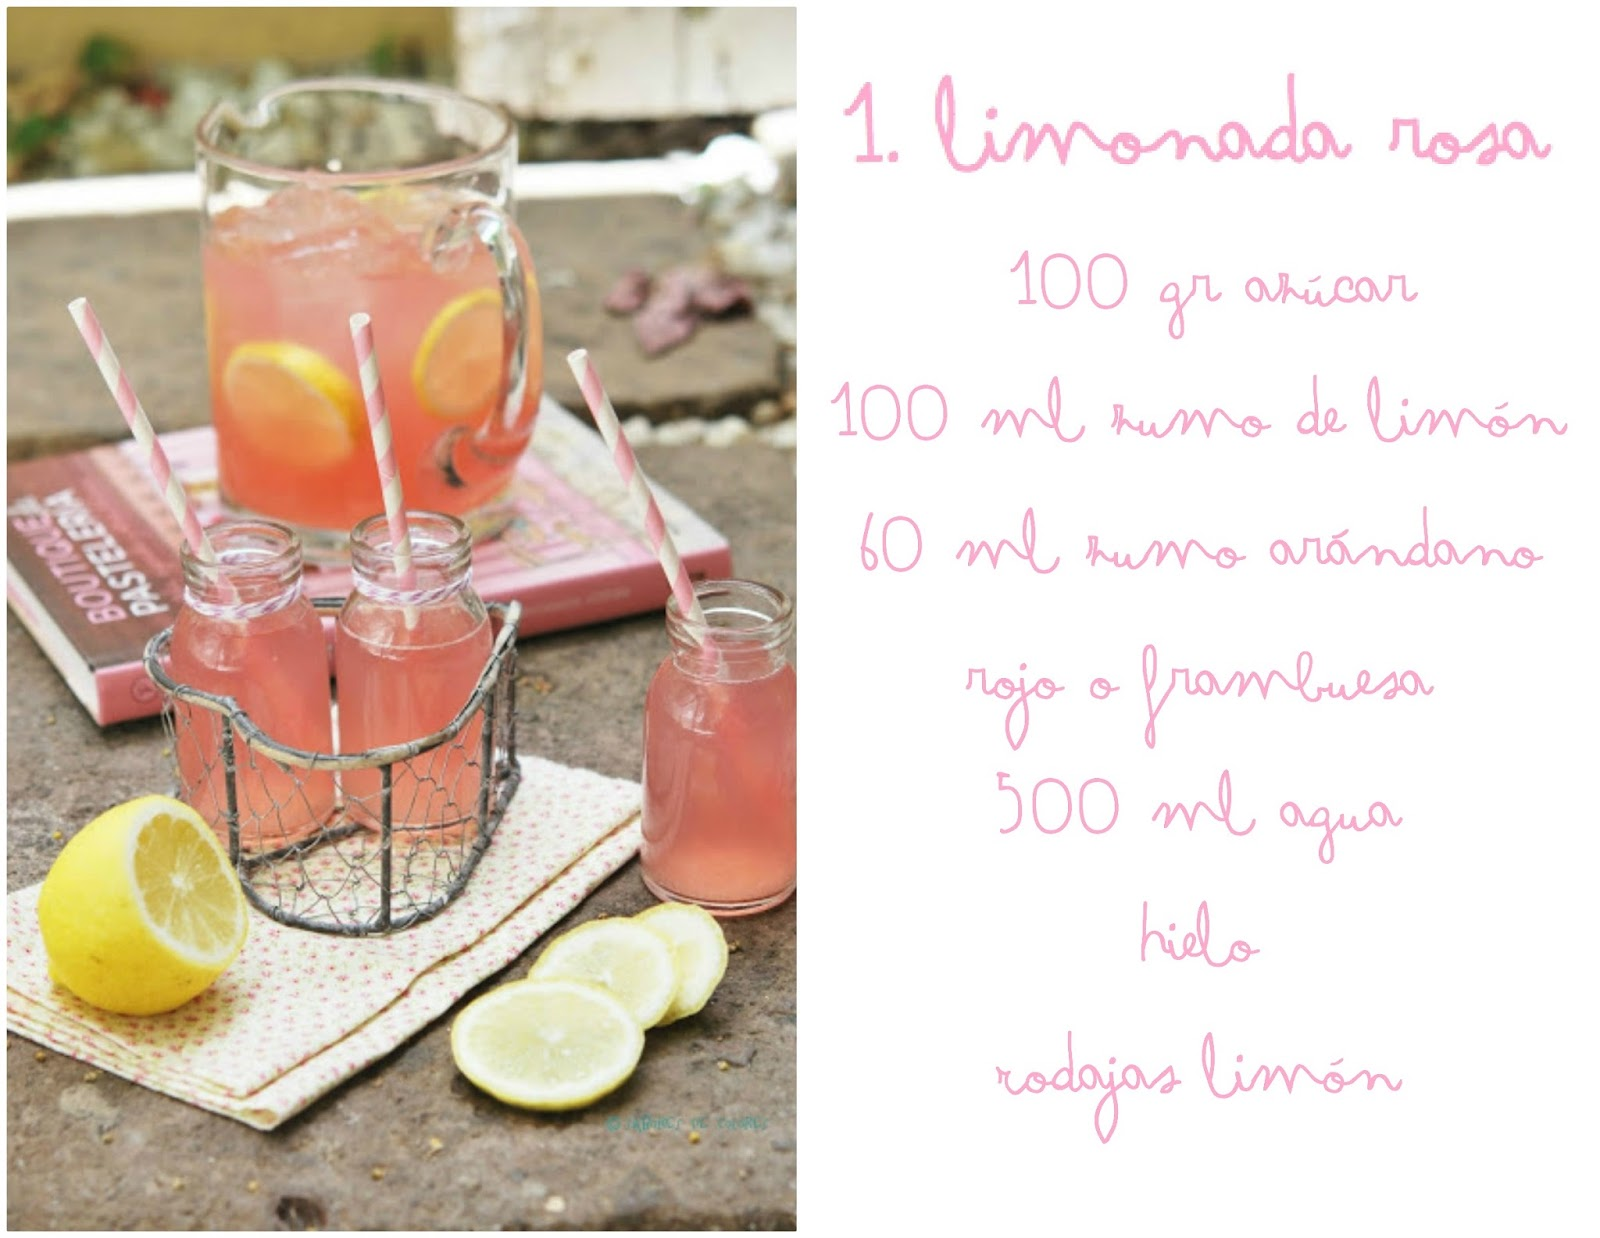 http://www.saboresdecolores.com/2013/07/limonada-rosa.html